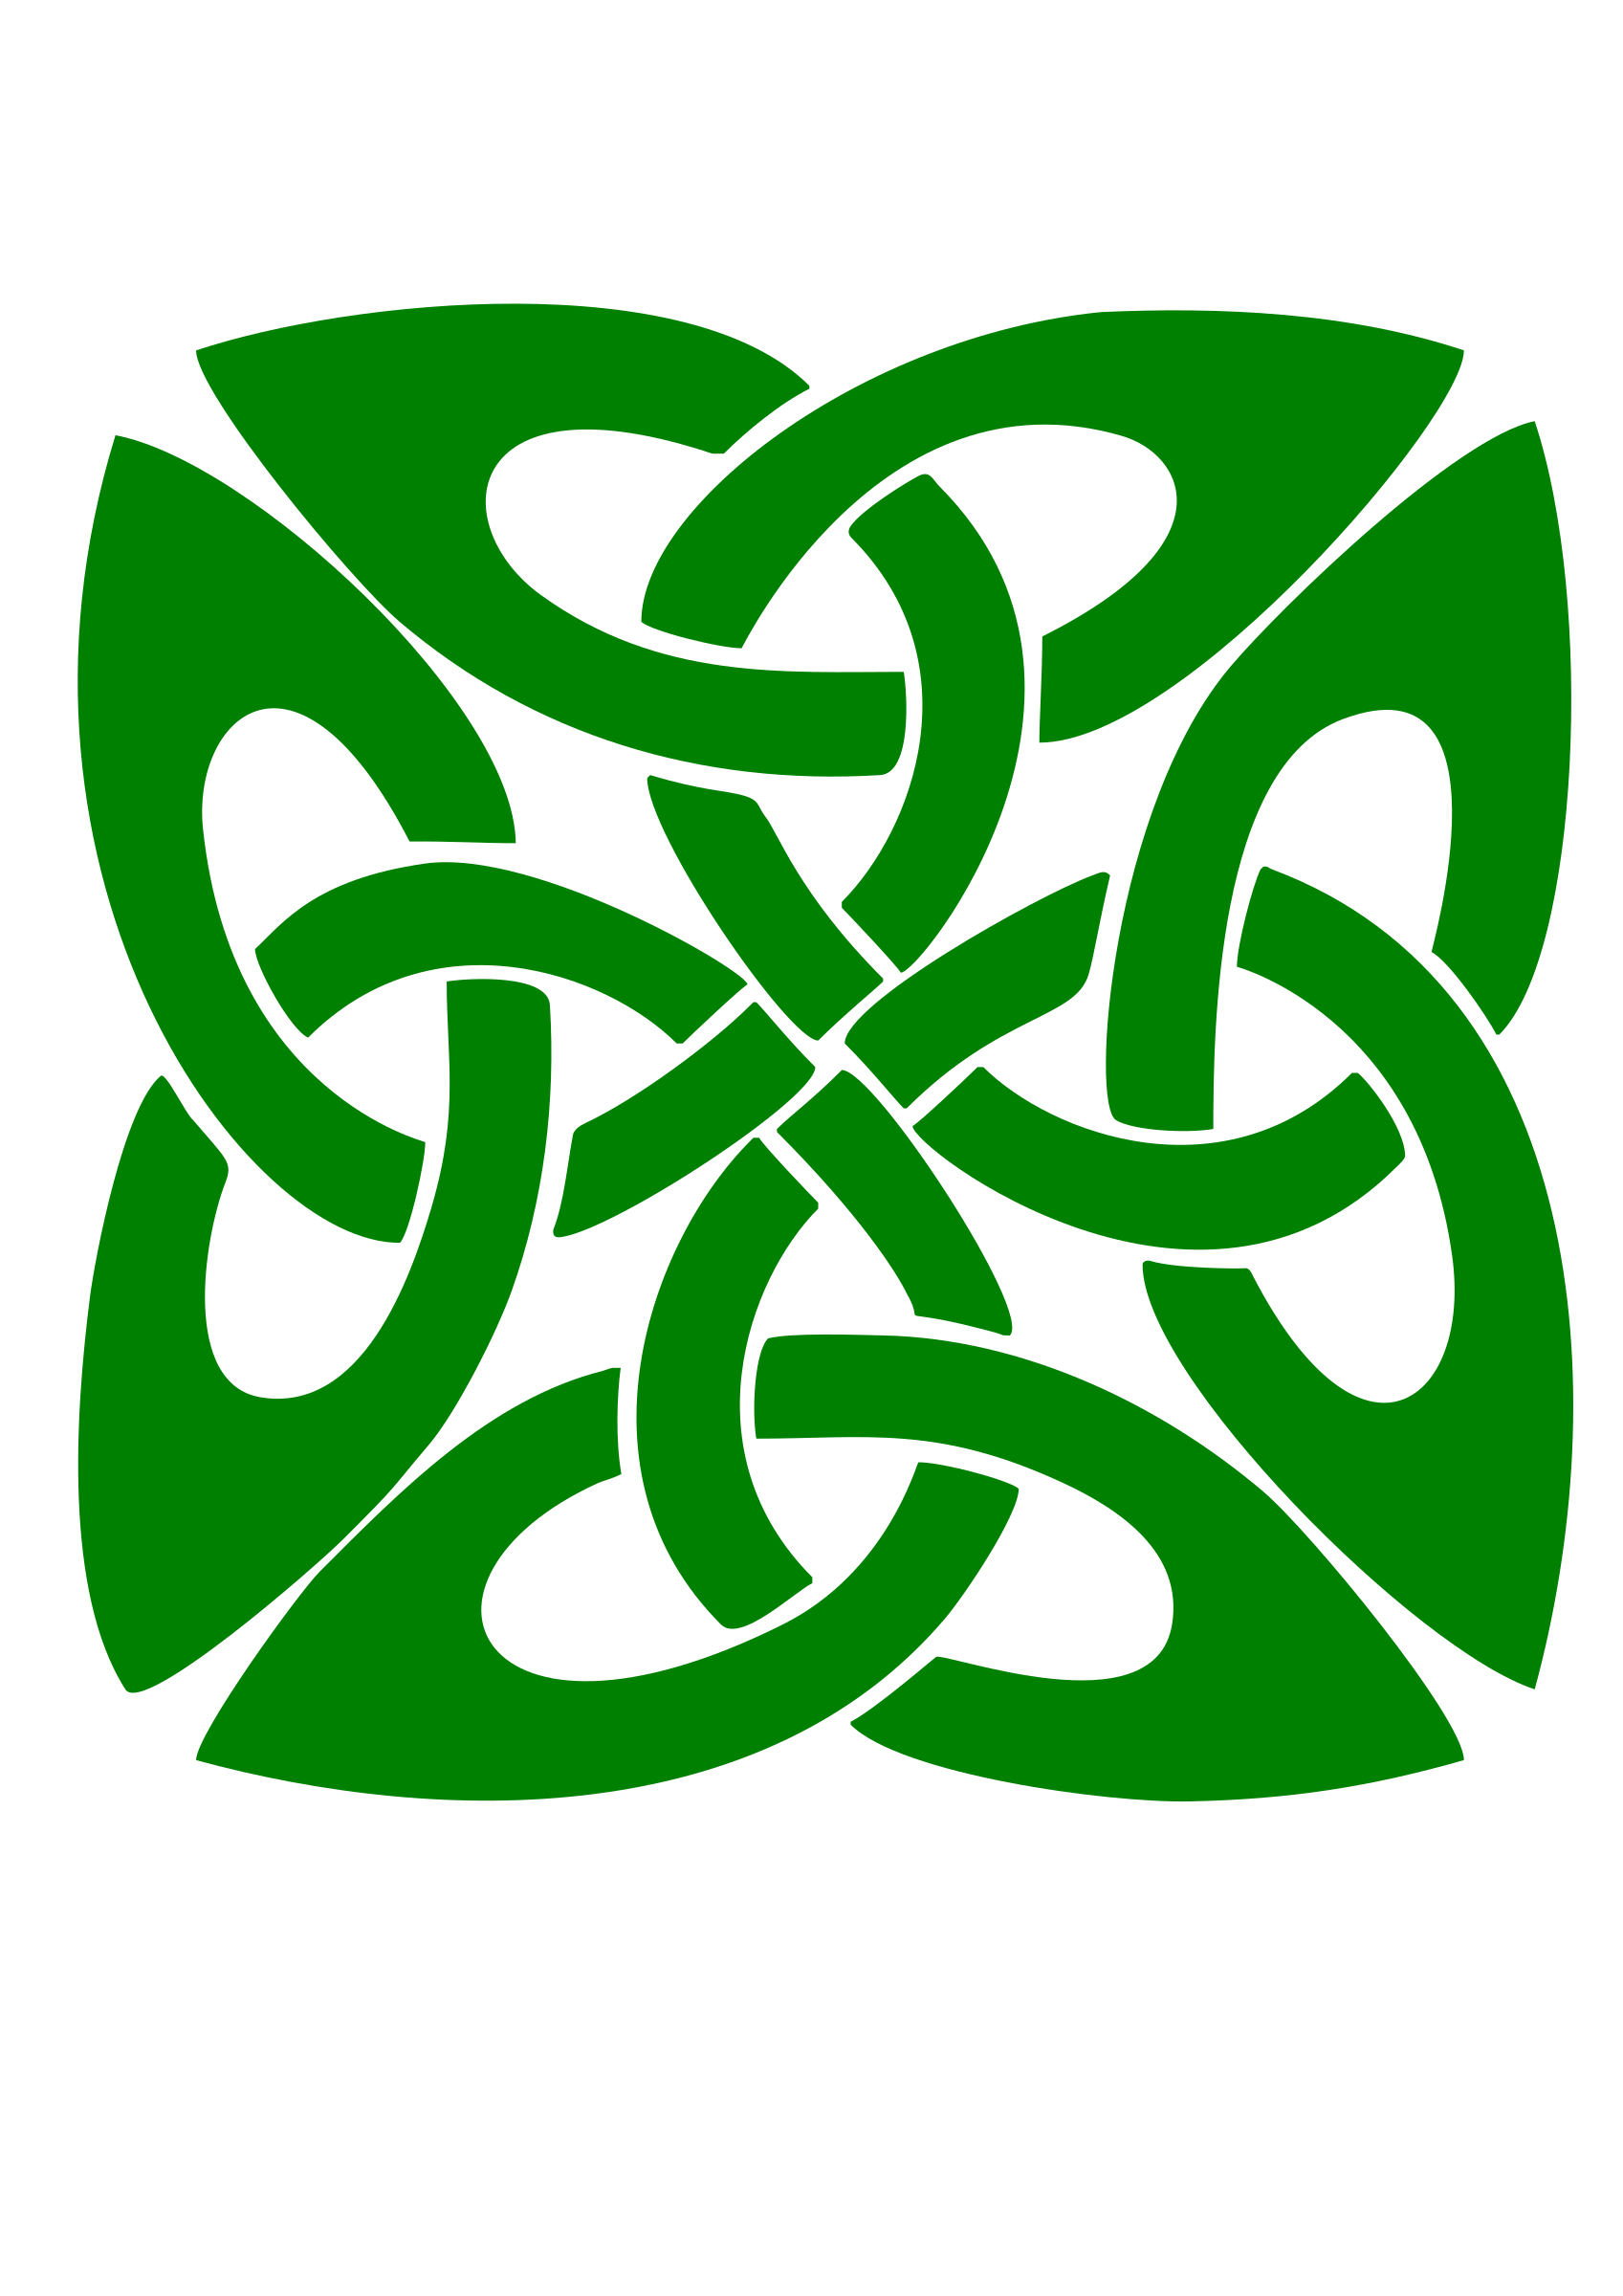 clip art freeuse library Knot big image png. Celtic clipart green.